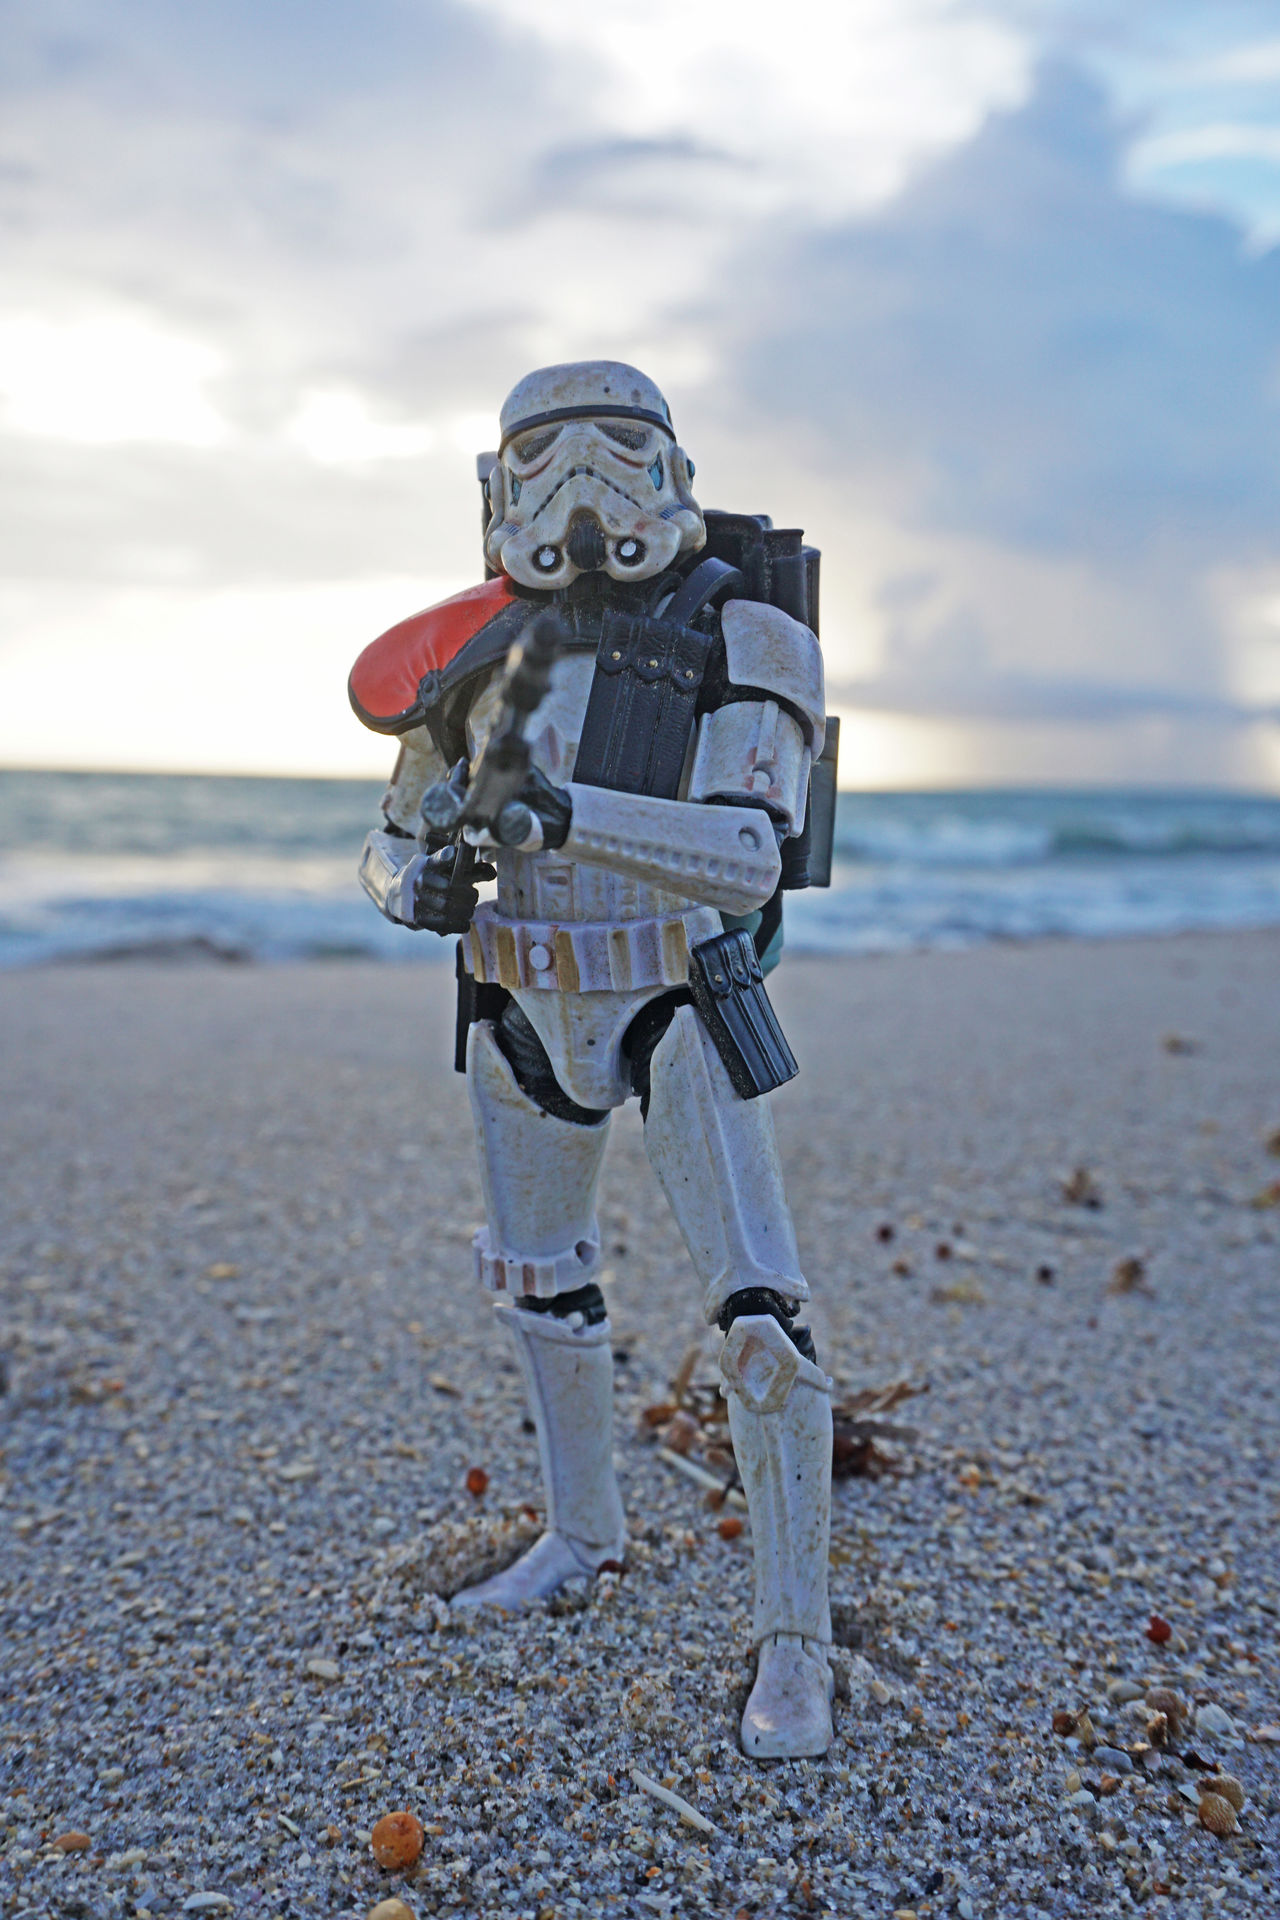 Hasbro Starwarstheblackseries Starwarsblackseries Toyphotography Toy Photography Stormtrooper Star Wars The Black Series Star Wars Sandtrooper